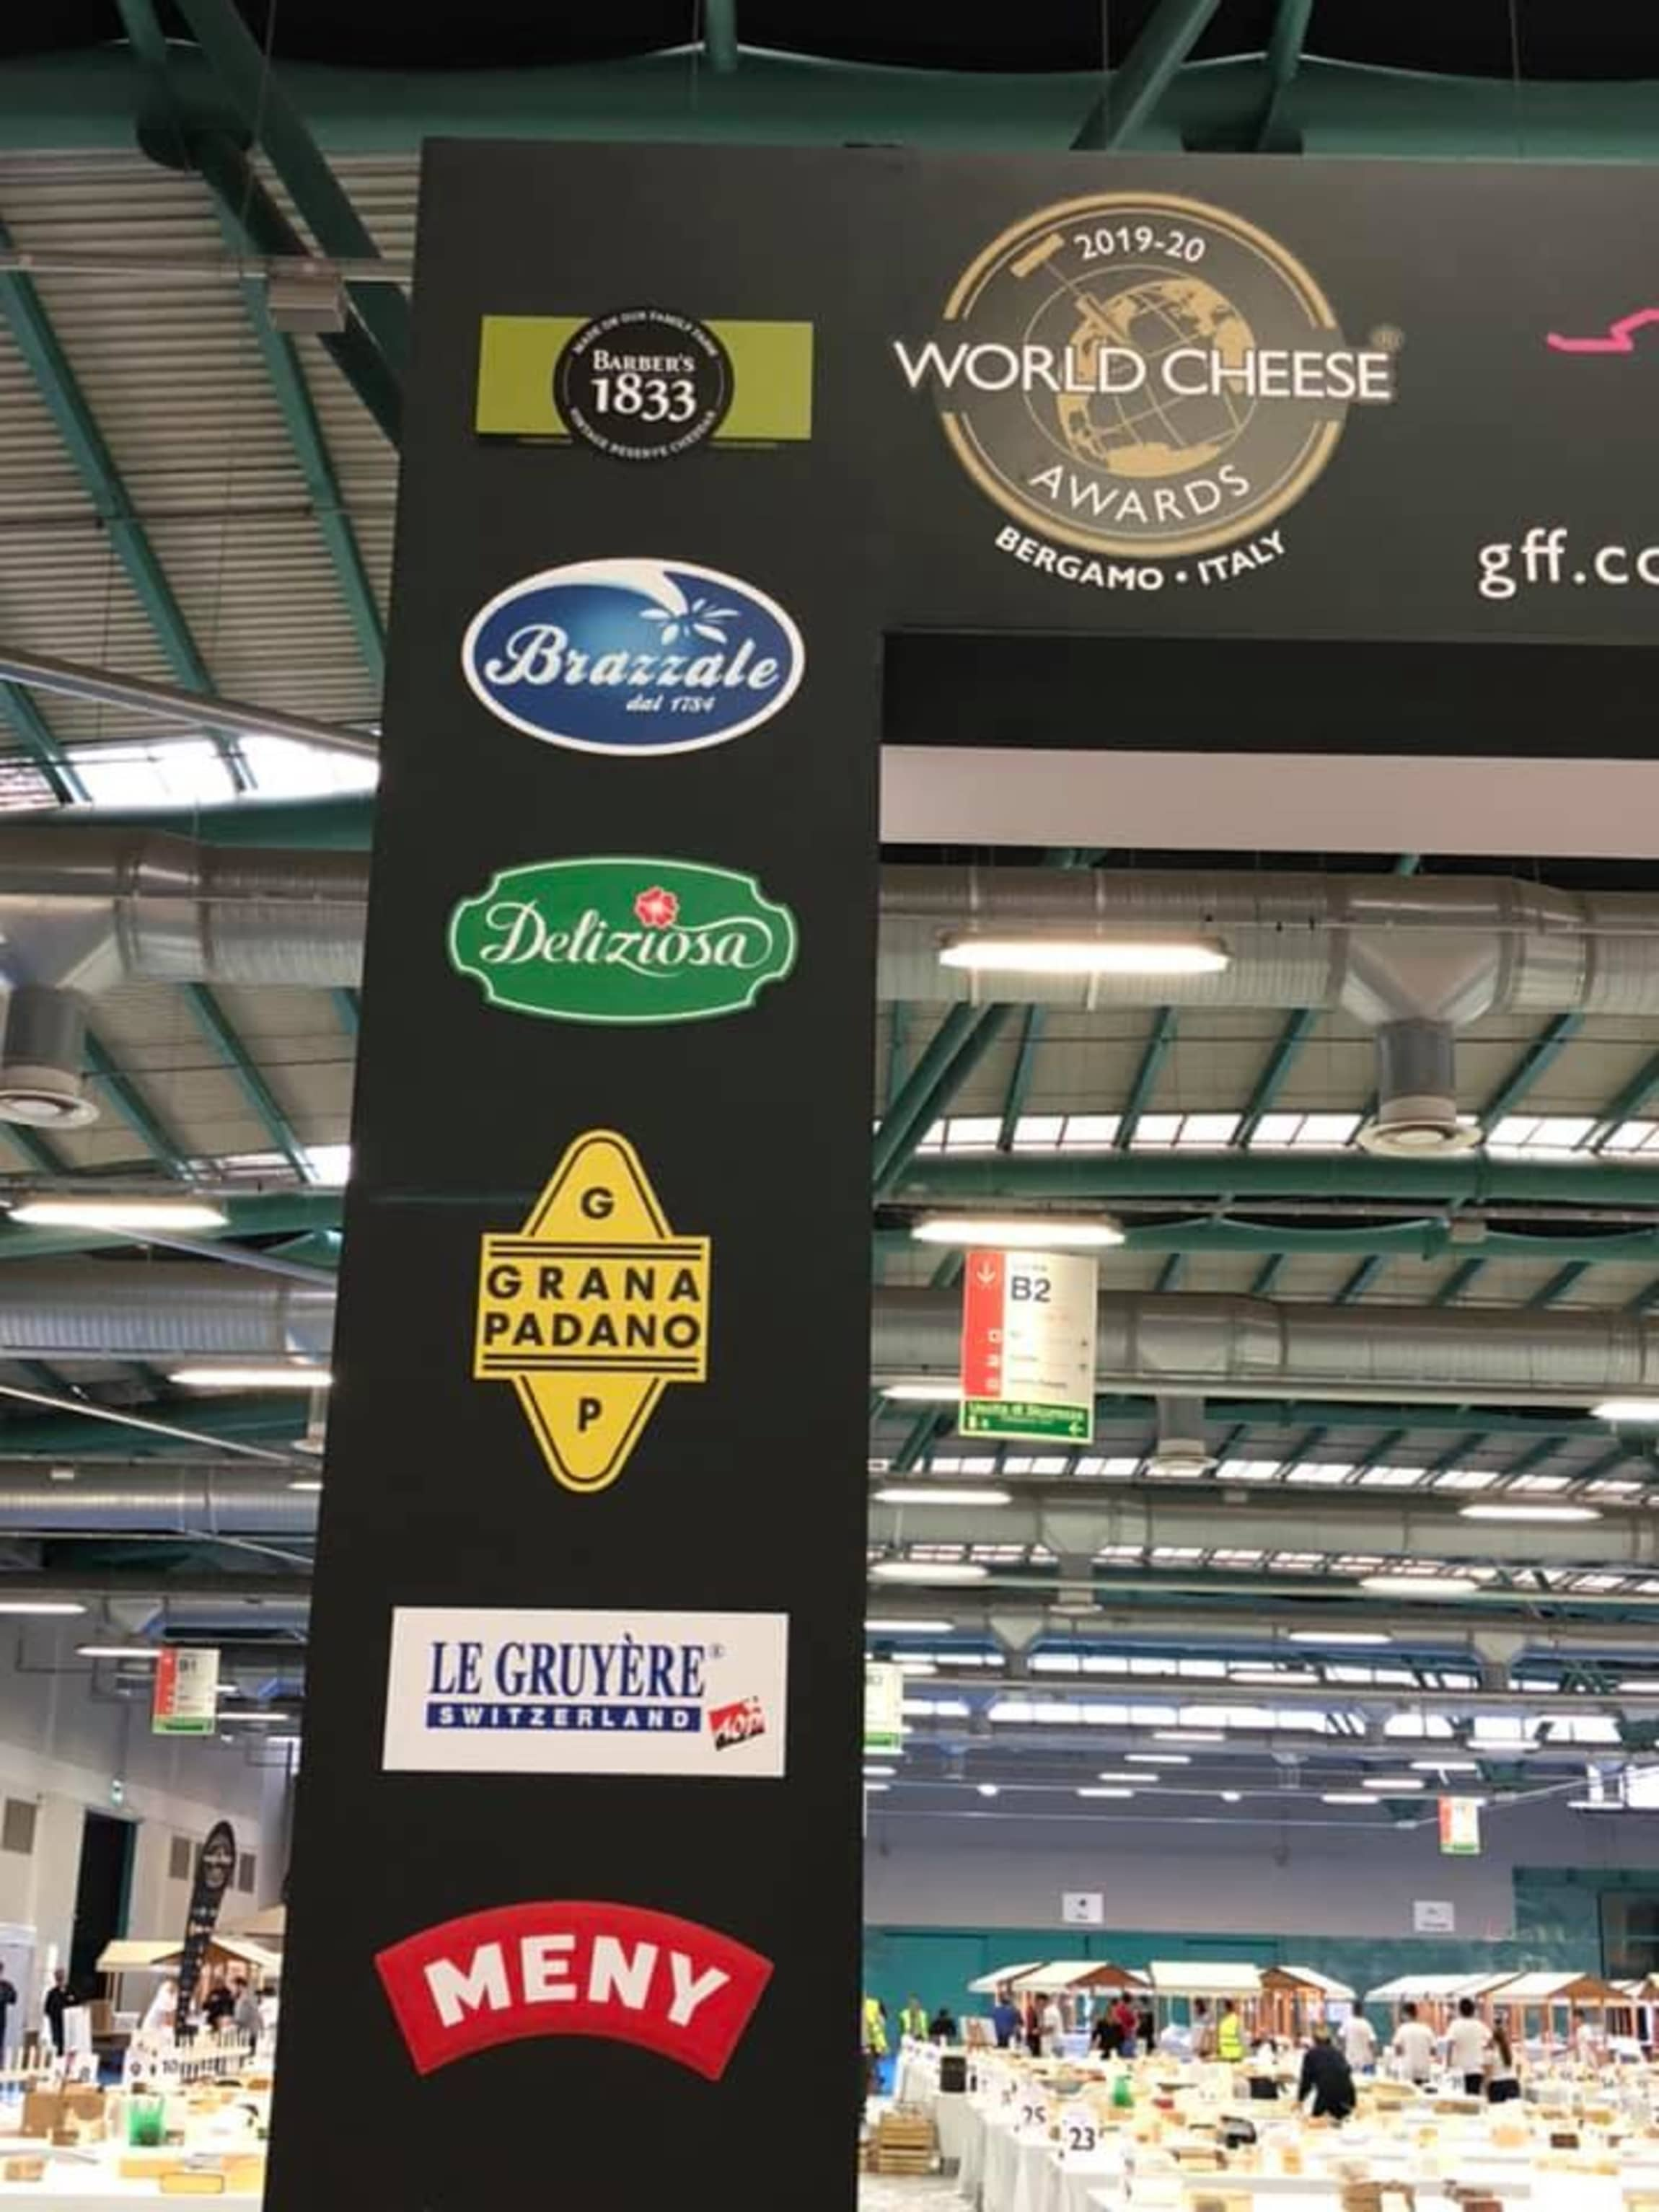 MENY er nasjonal sponsor av World Cheese Awards